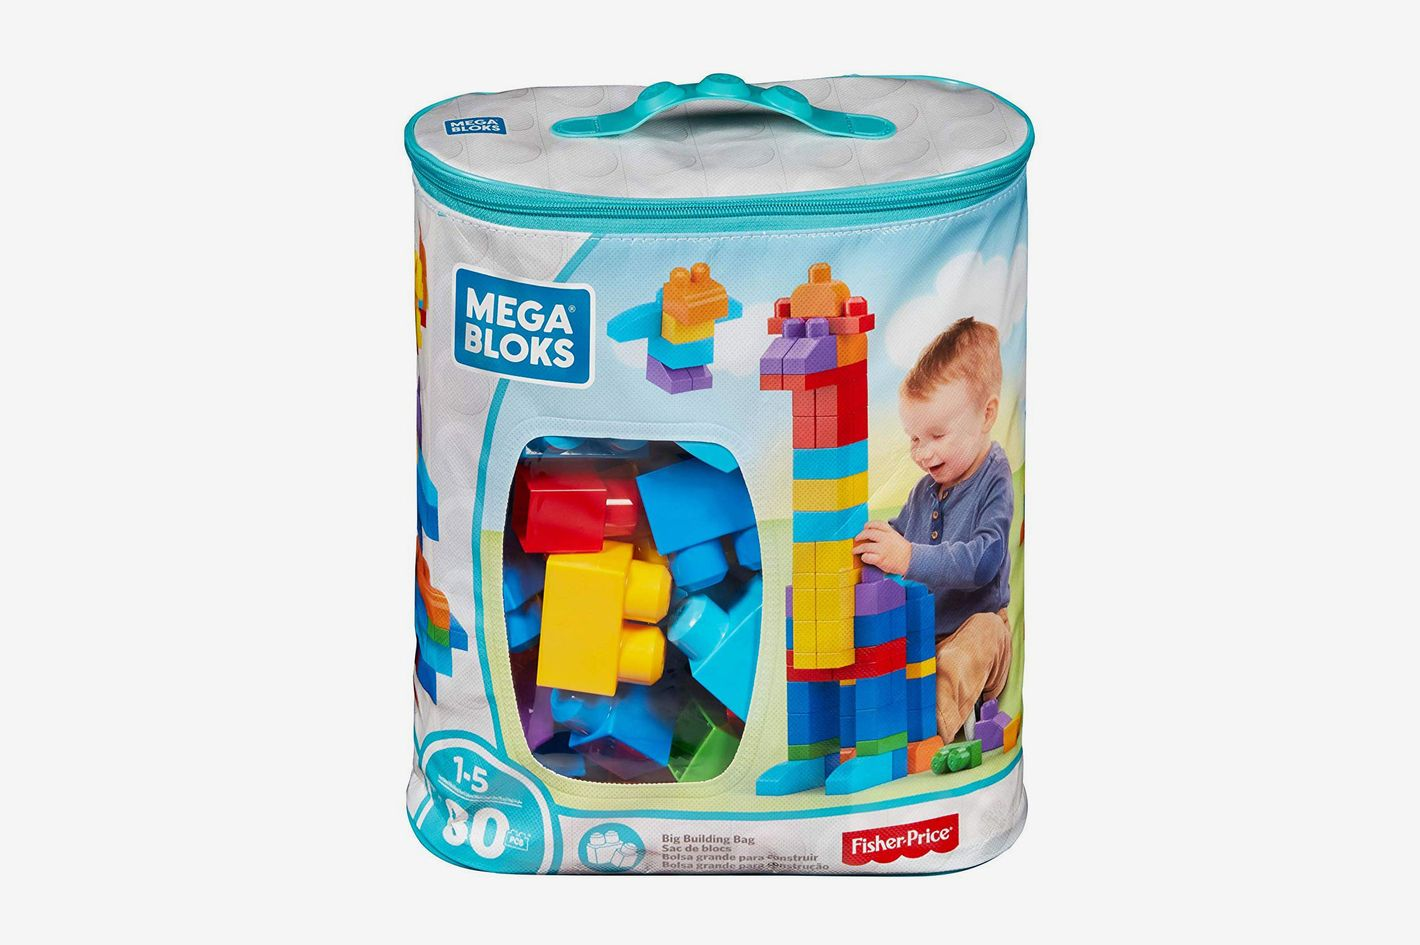 Mega Bloks 80 Piece Big Building Bag